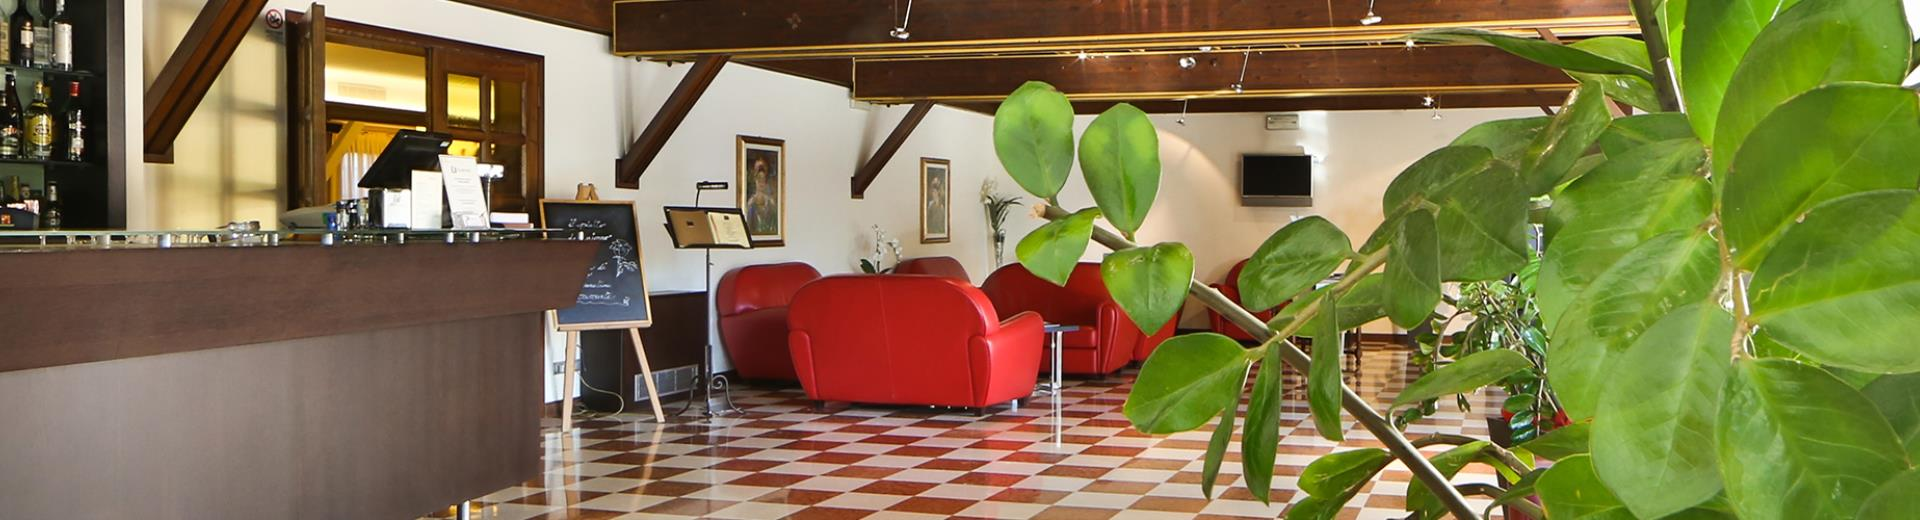 Looking for a hotel for your stay in Silea (TV)? Book/reserve at the Best Western Titian Inn Hotel Treviso